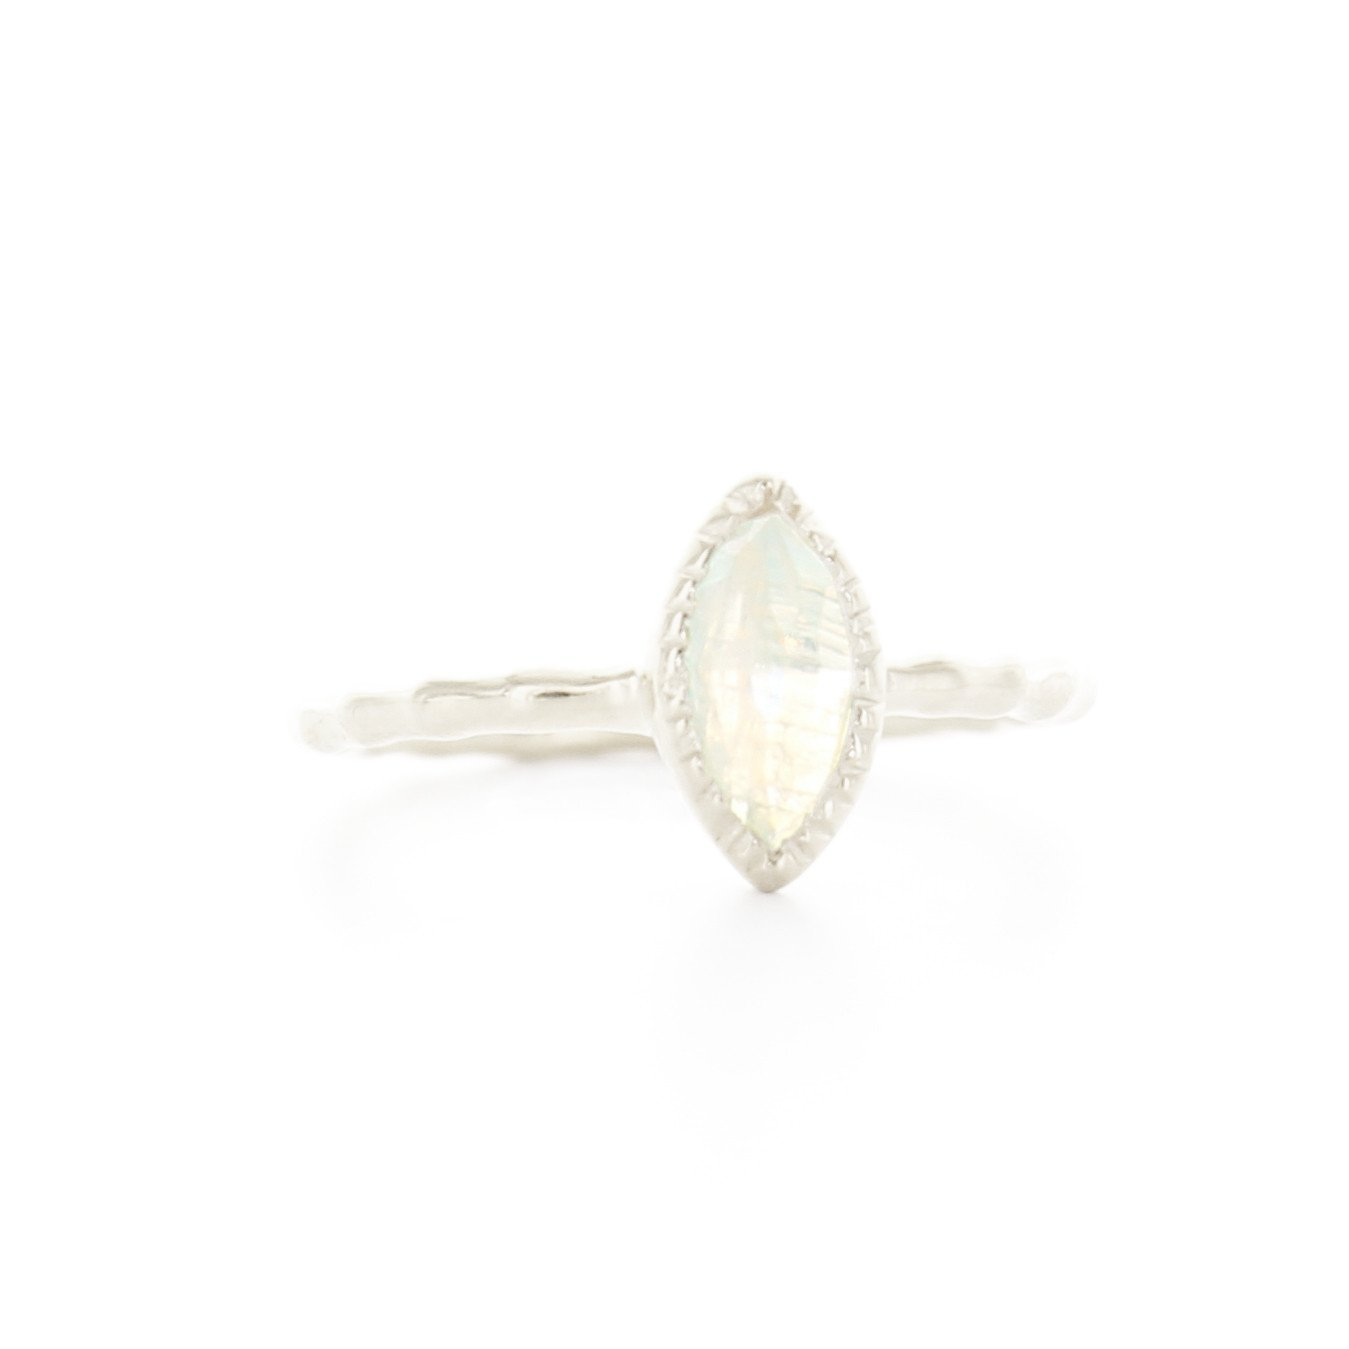 MINI TRUST MARQUISE RING - MOONSTONE & SILVER - SO PRETTY CARA COTTER